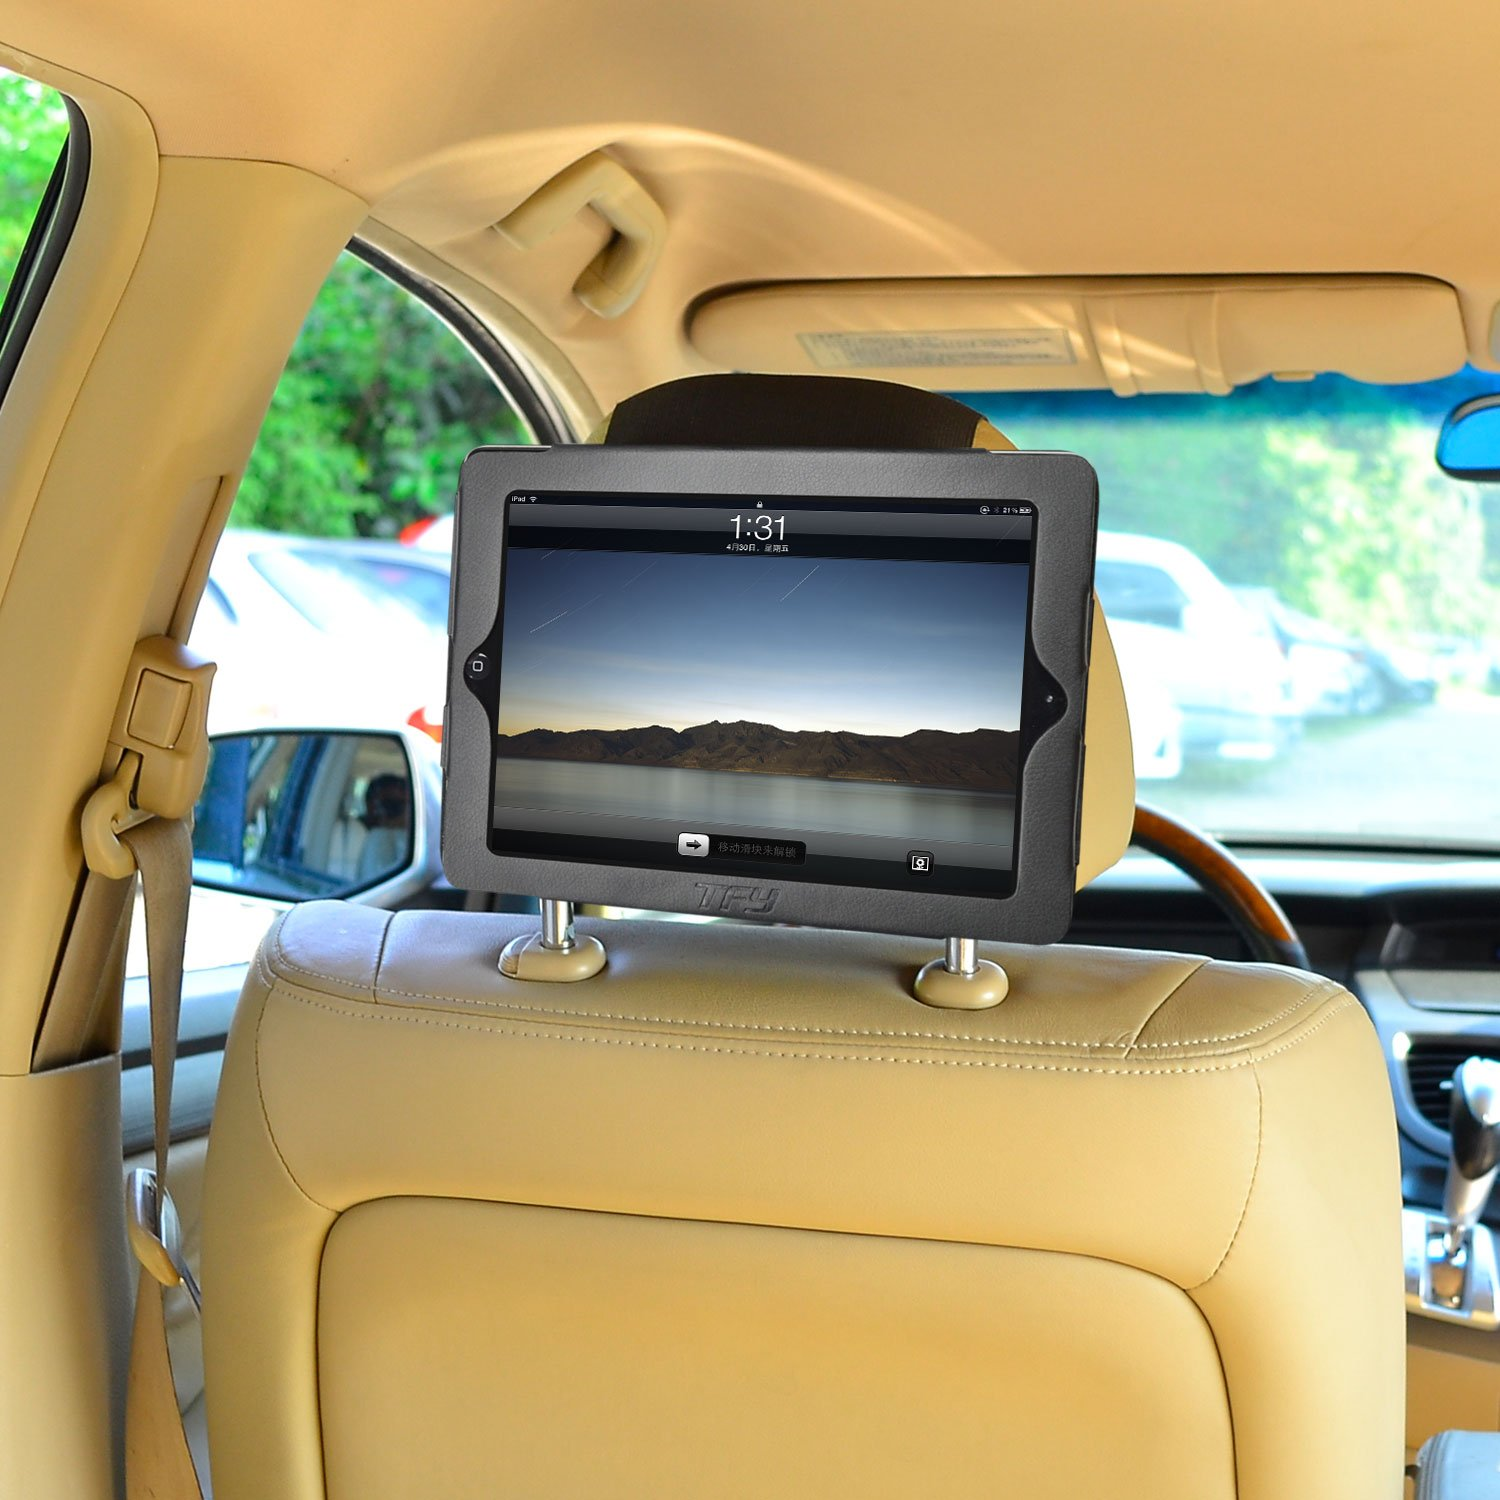 TFY iPad 4 / iPad 3 / iPad 2 Car Headrest Mount Holder